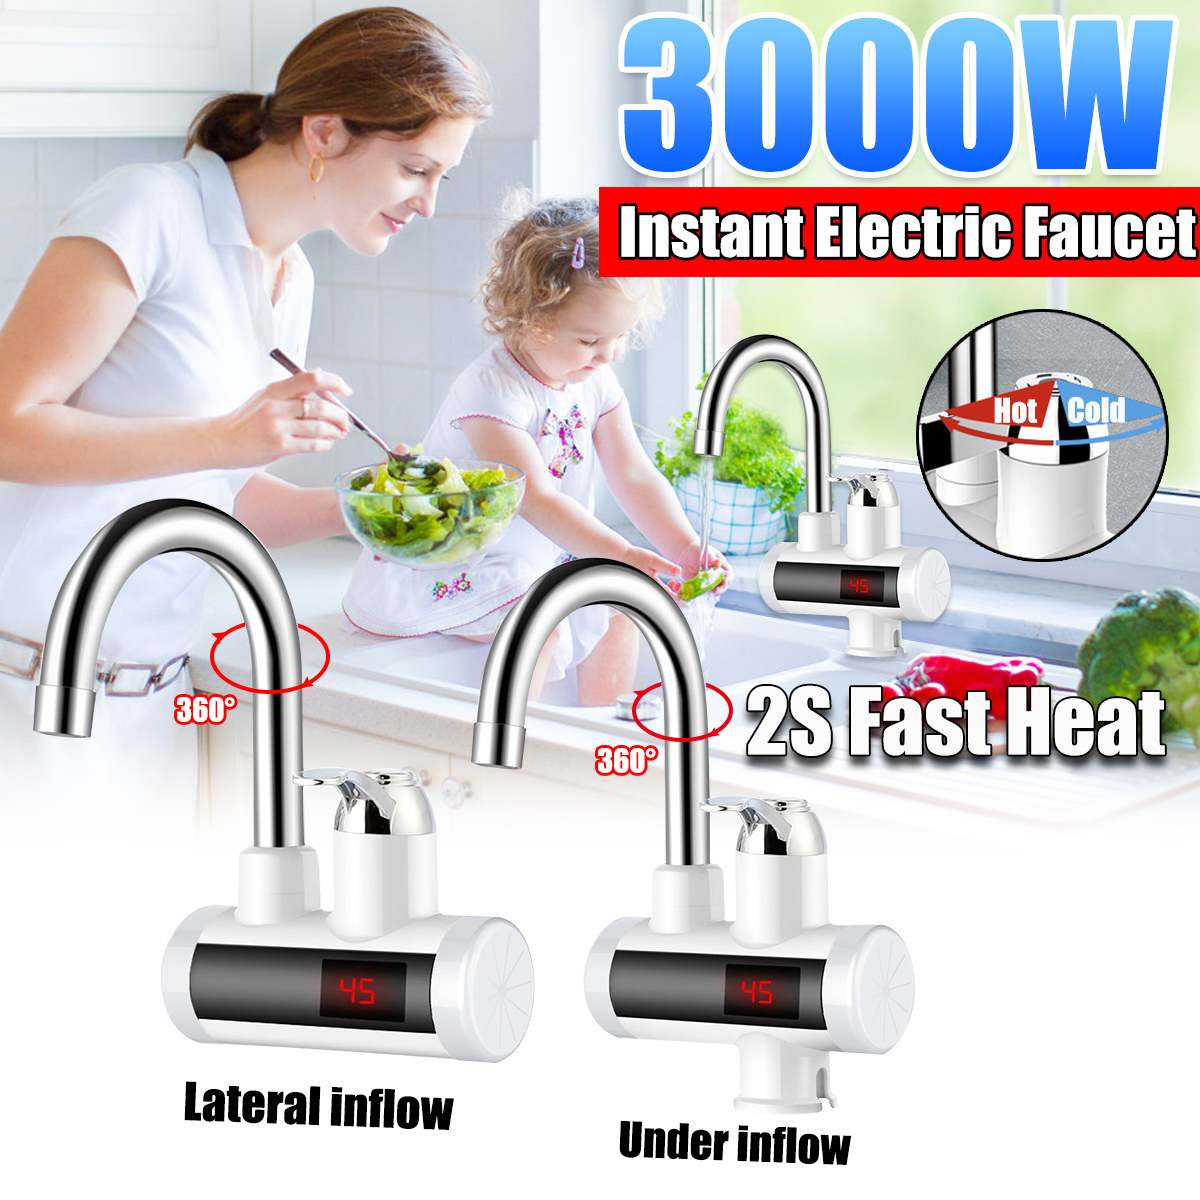 2 Types 360 Rotated 3000W Instant Electric Faucet Tap Hot Water-Heater LED Display Bathroom Kitchen Hot Water-Heater